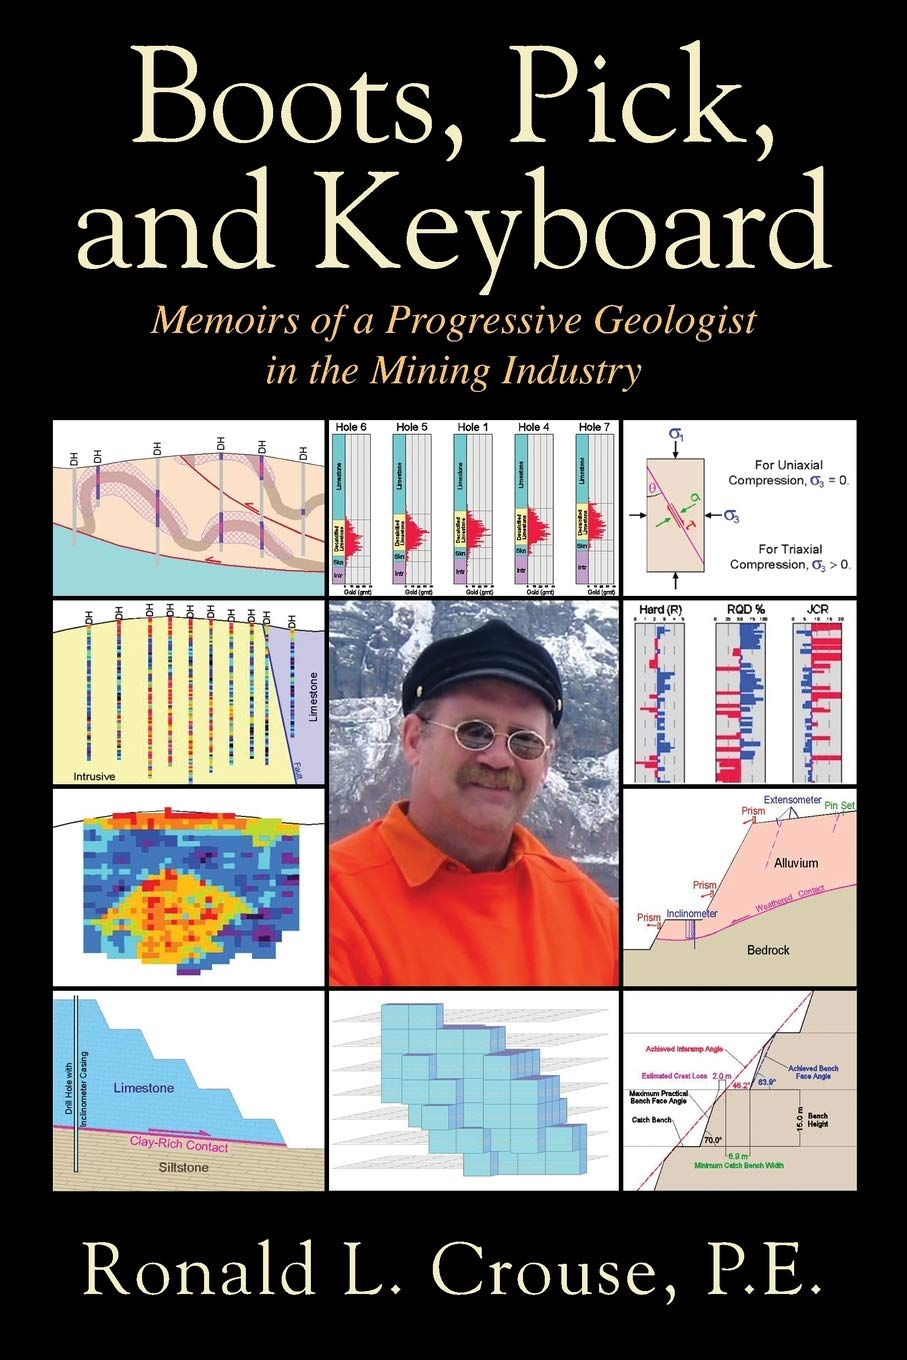 Boots, Pick, and Keyboard: Memoirs of a Progressive Geologist in the Mining Industry